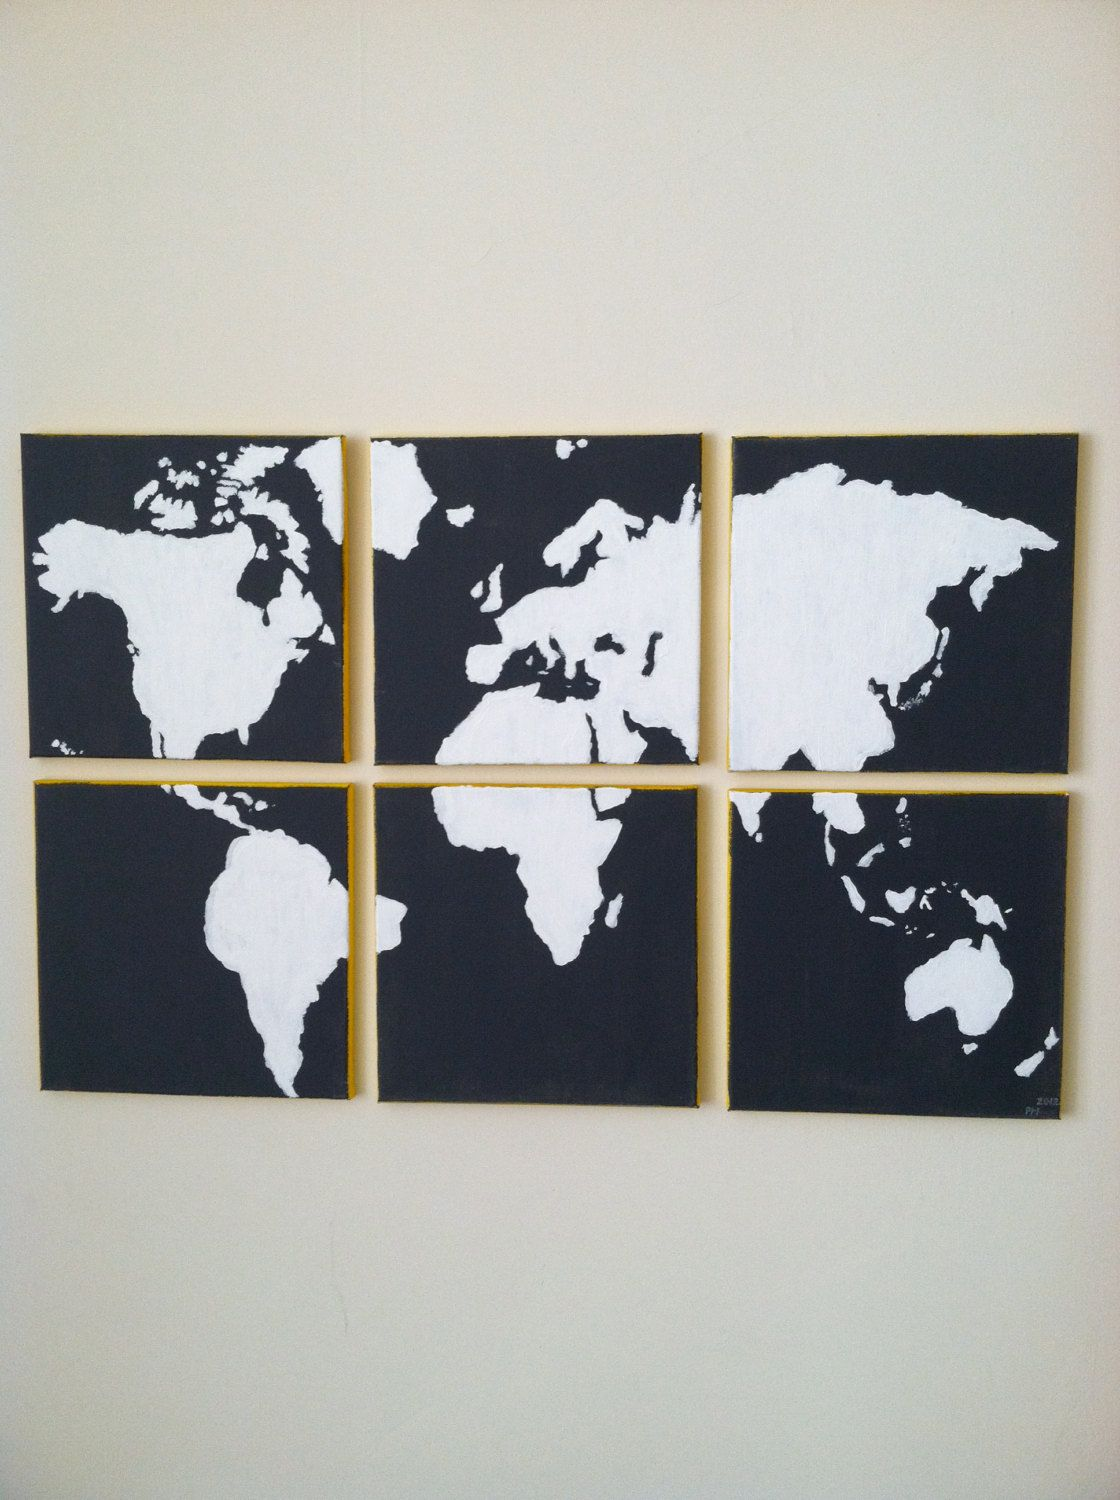 6 panel canvas world map 15000 via etsy obsessed with this one 6 panel canvas world map 15000 via etsy obsessed with this one gumiabroncs Images